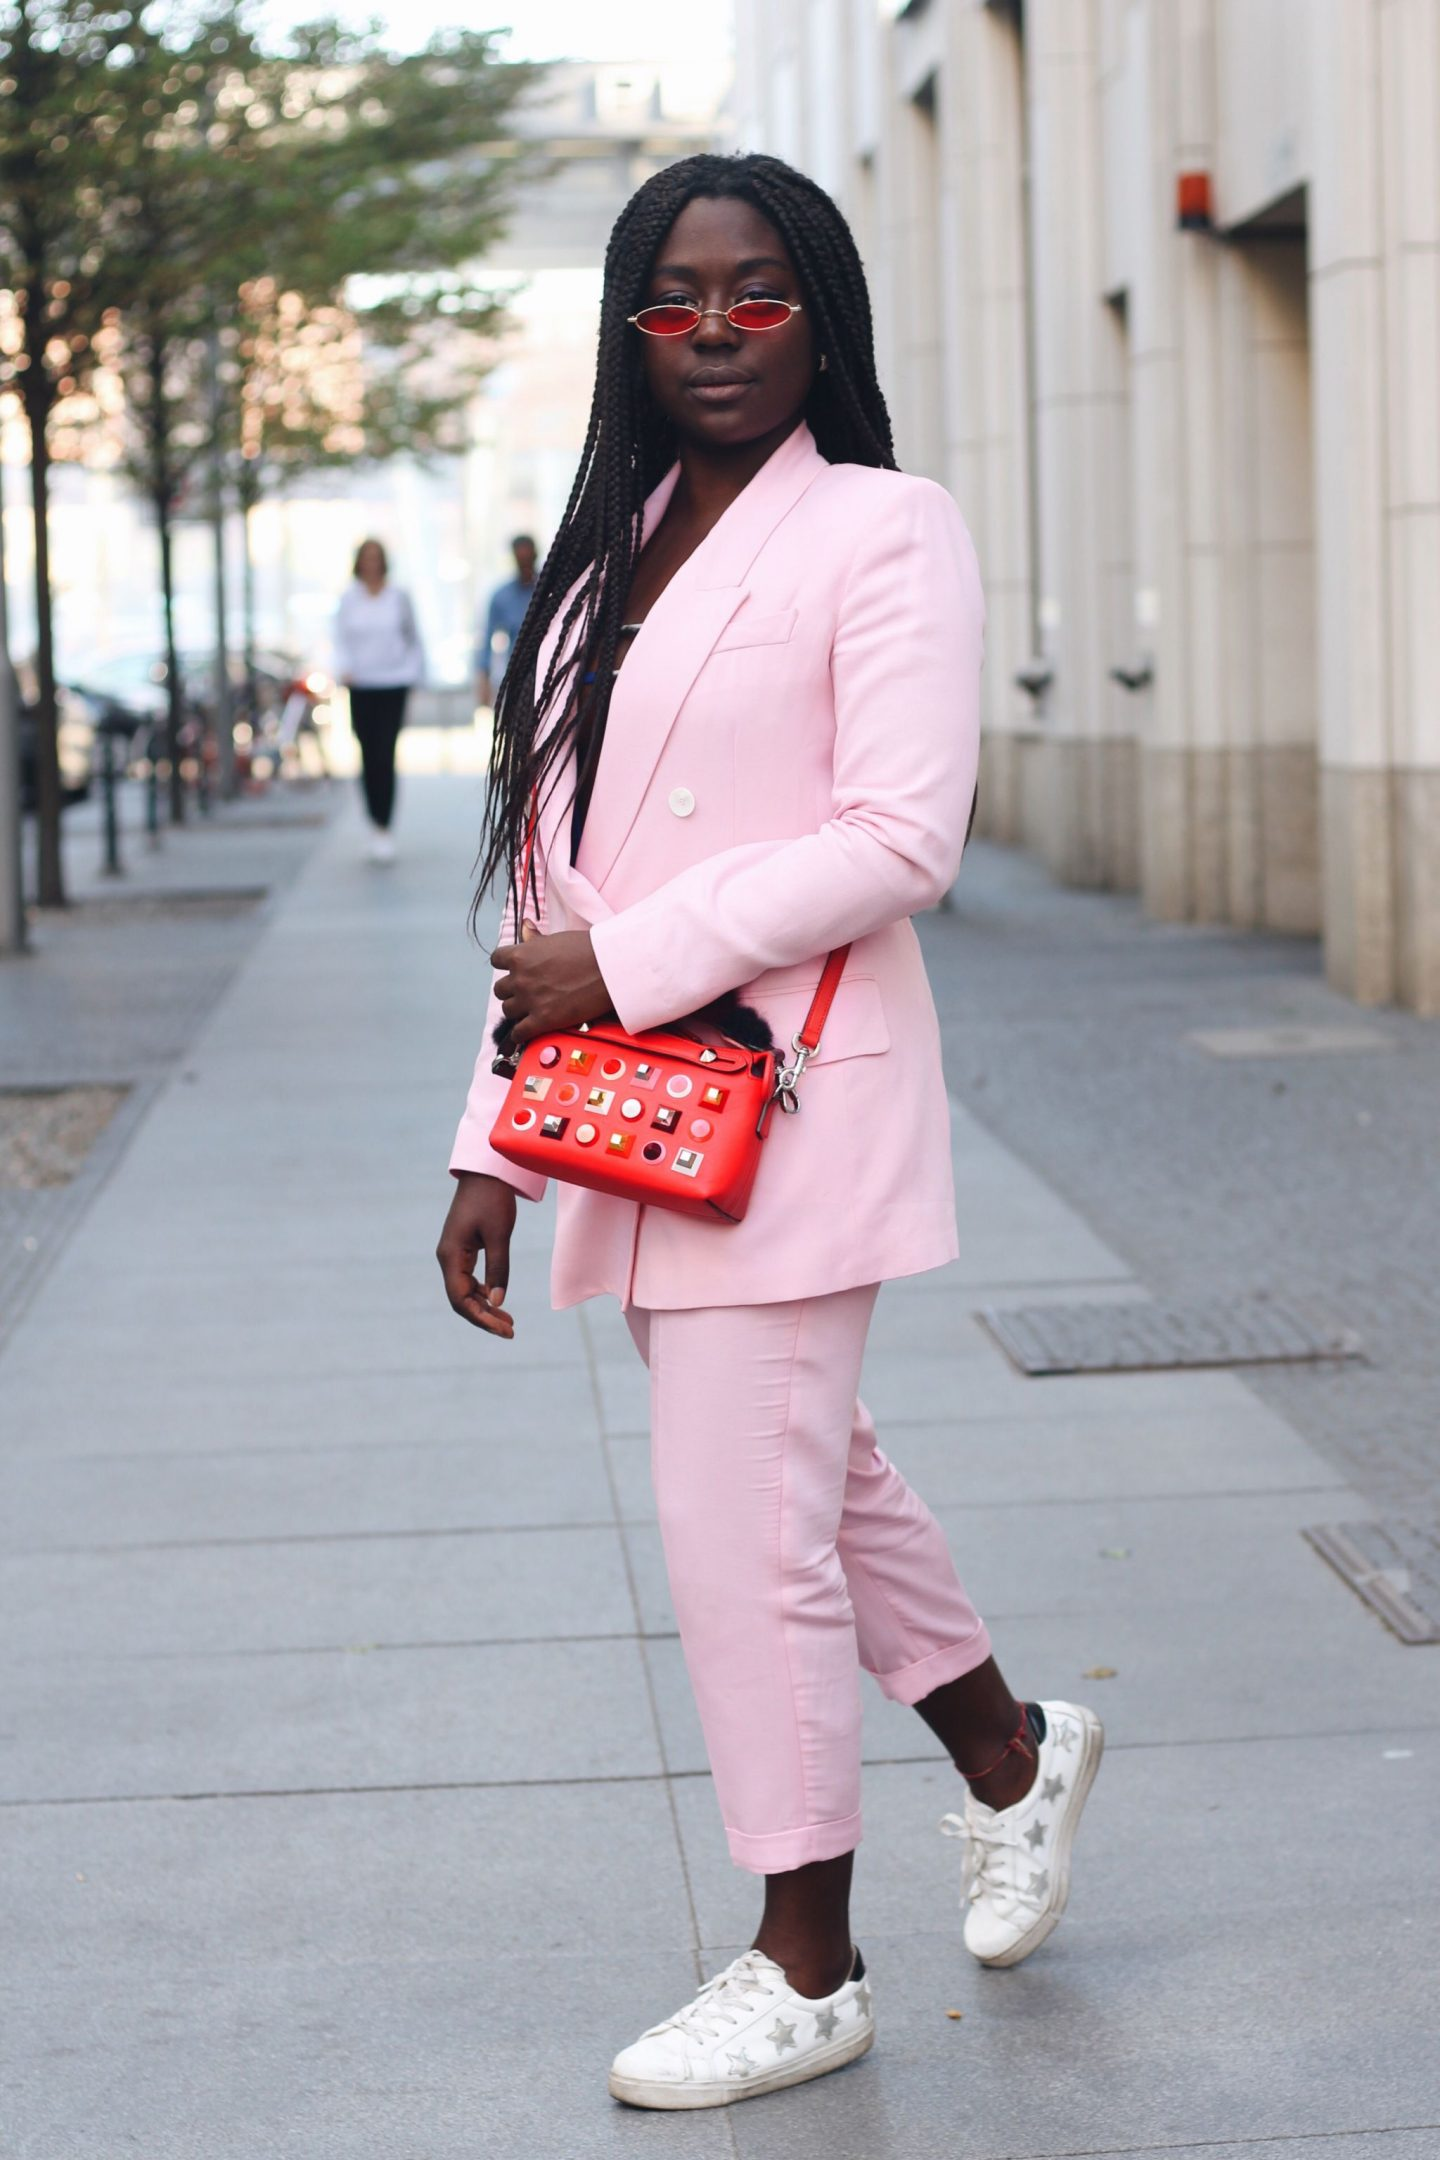 Lois_Opoku_pink_suit_fendi_by_the_way_bag_fasion_week_street_style_lisforlois_8